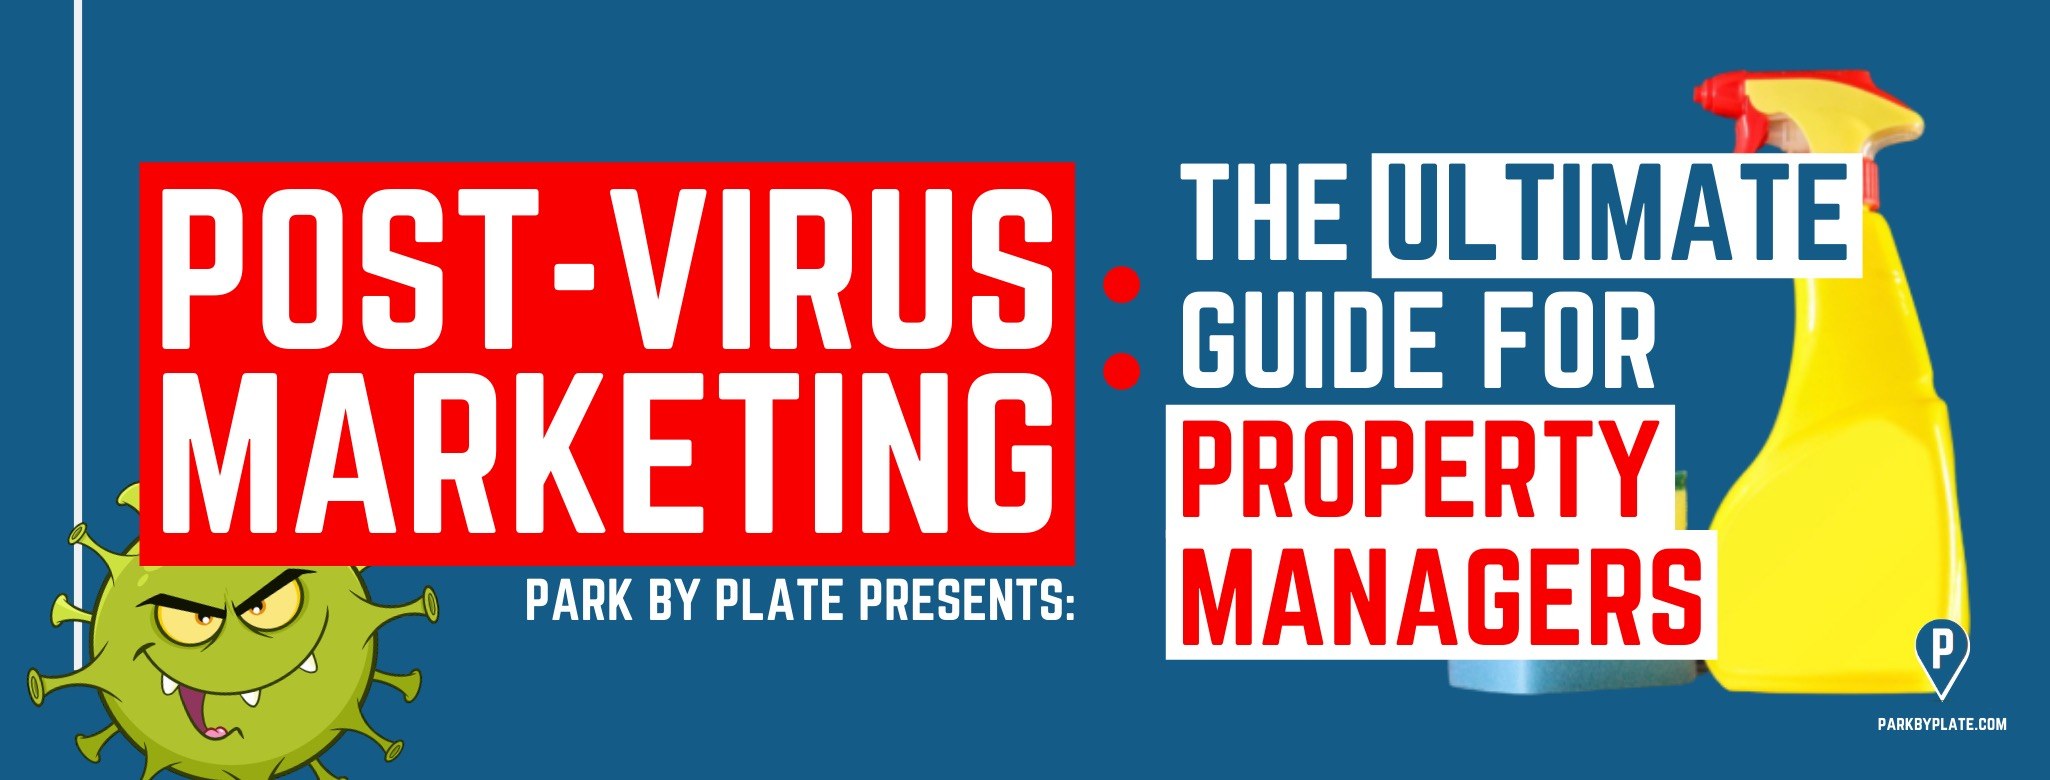 Post Virus Marketing: The Ultimate Guide for Property Managers